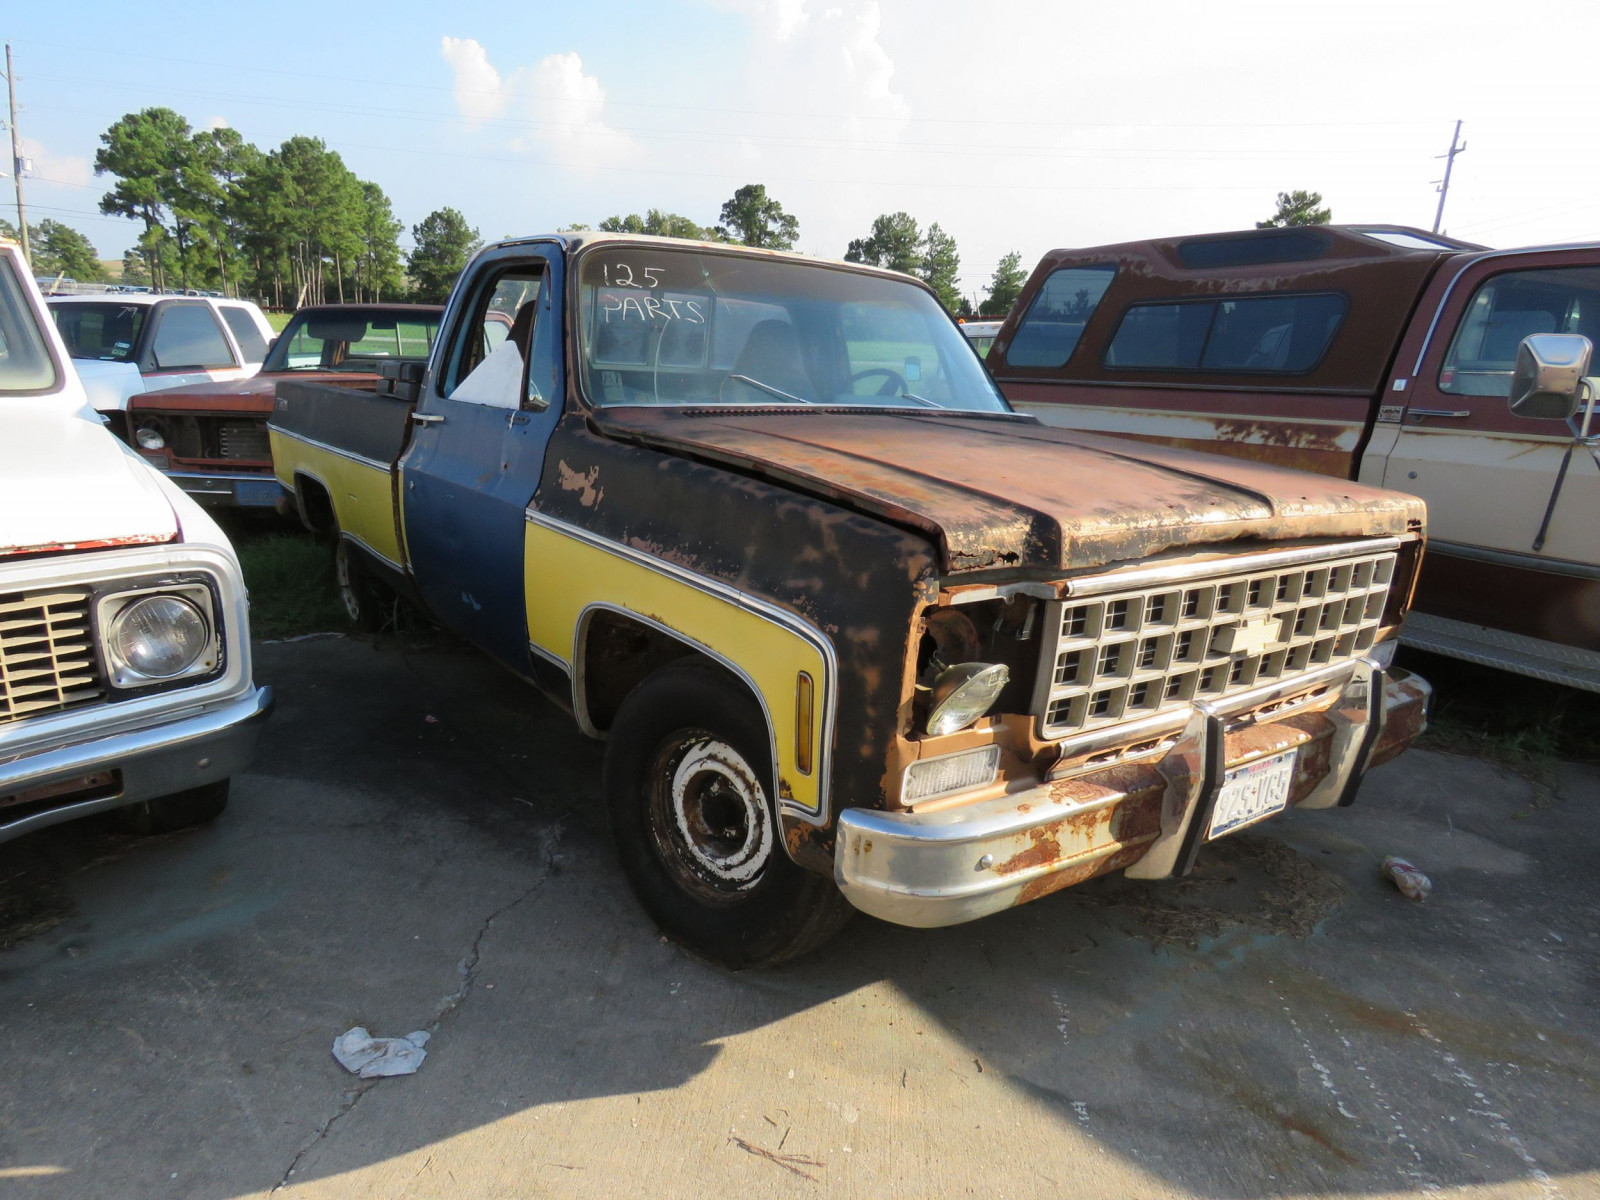 1979 Chevrolet Pickup - Image 2